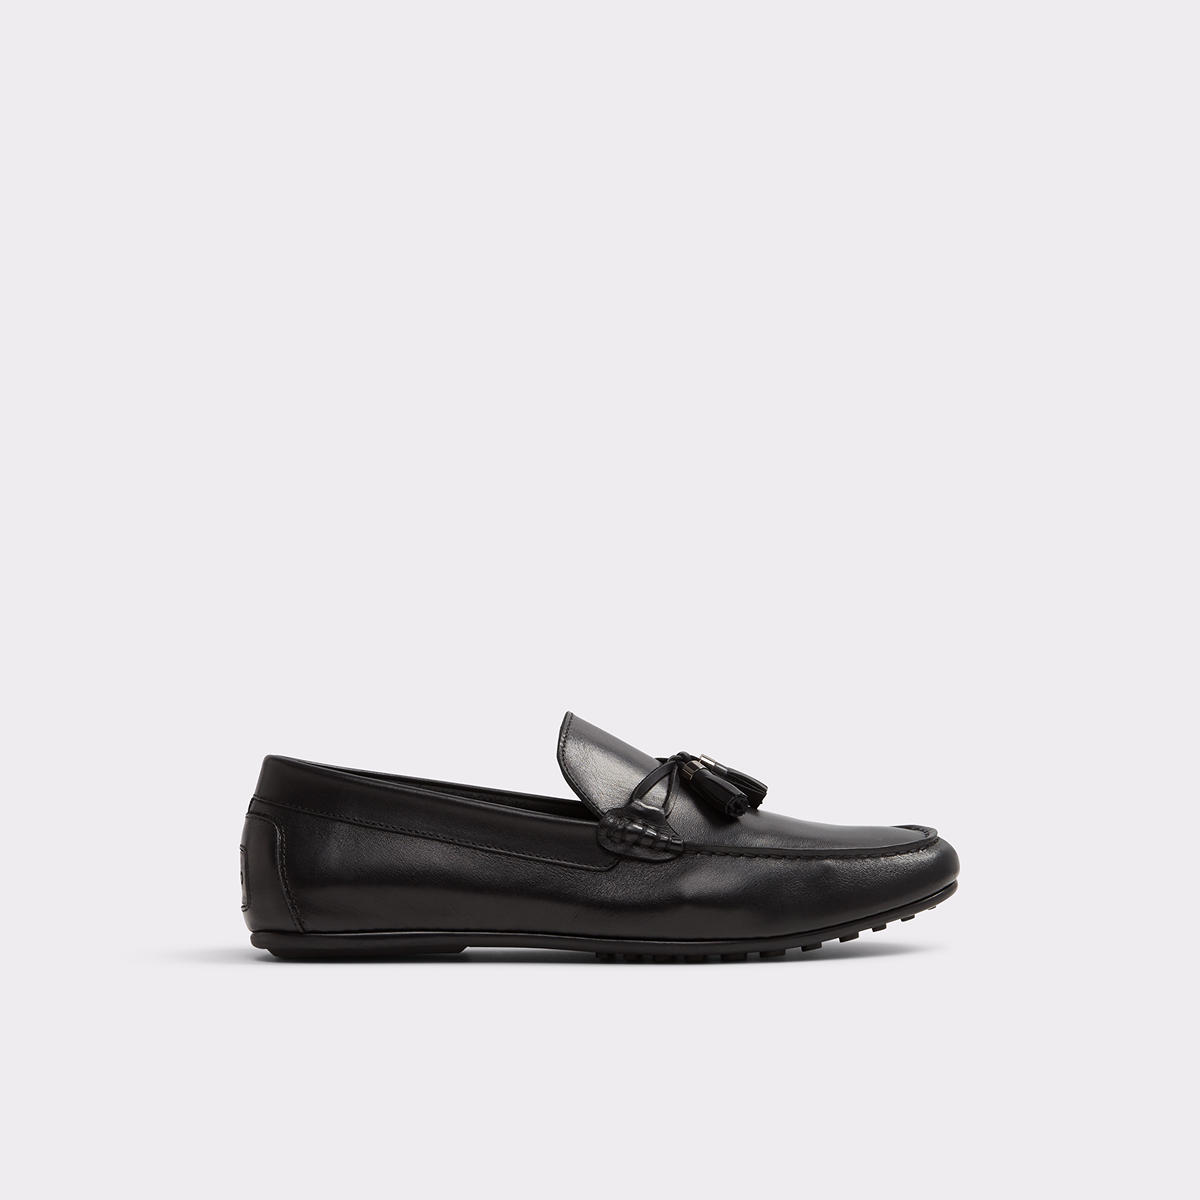 outlet best seller ALDO Freinia Leather Tassel Drivers cheap official site f9TNU9giOZ